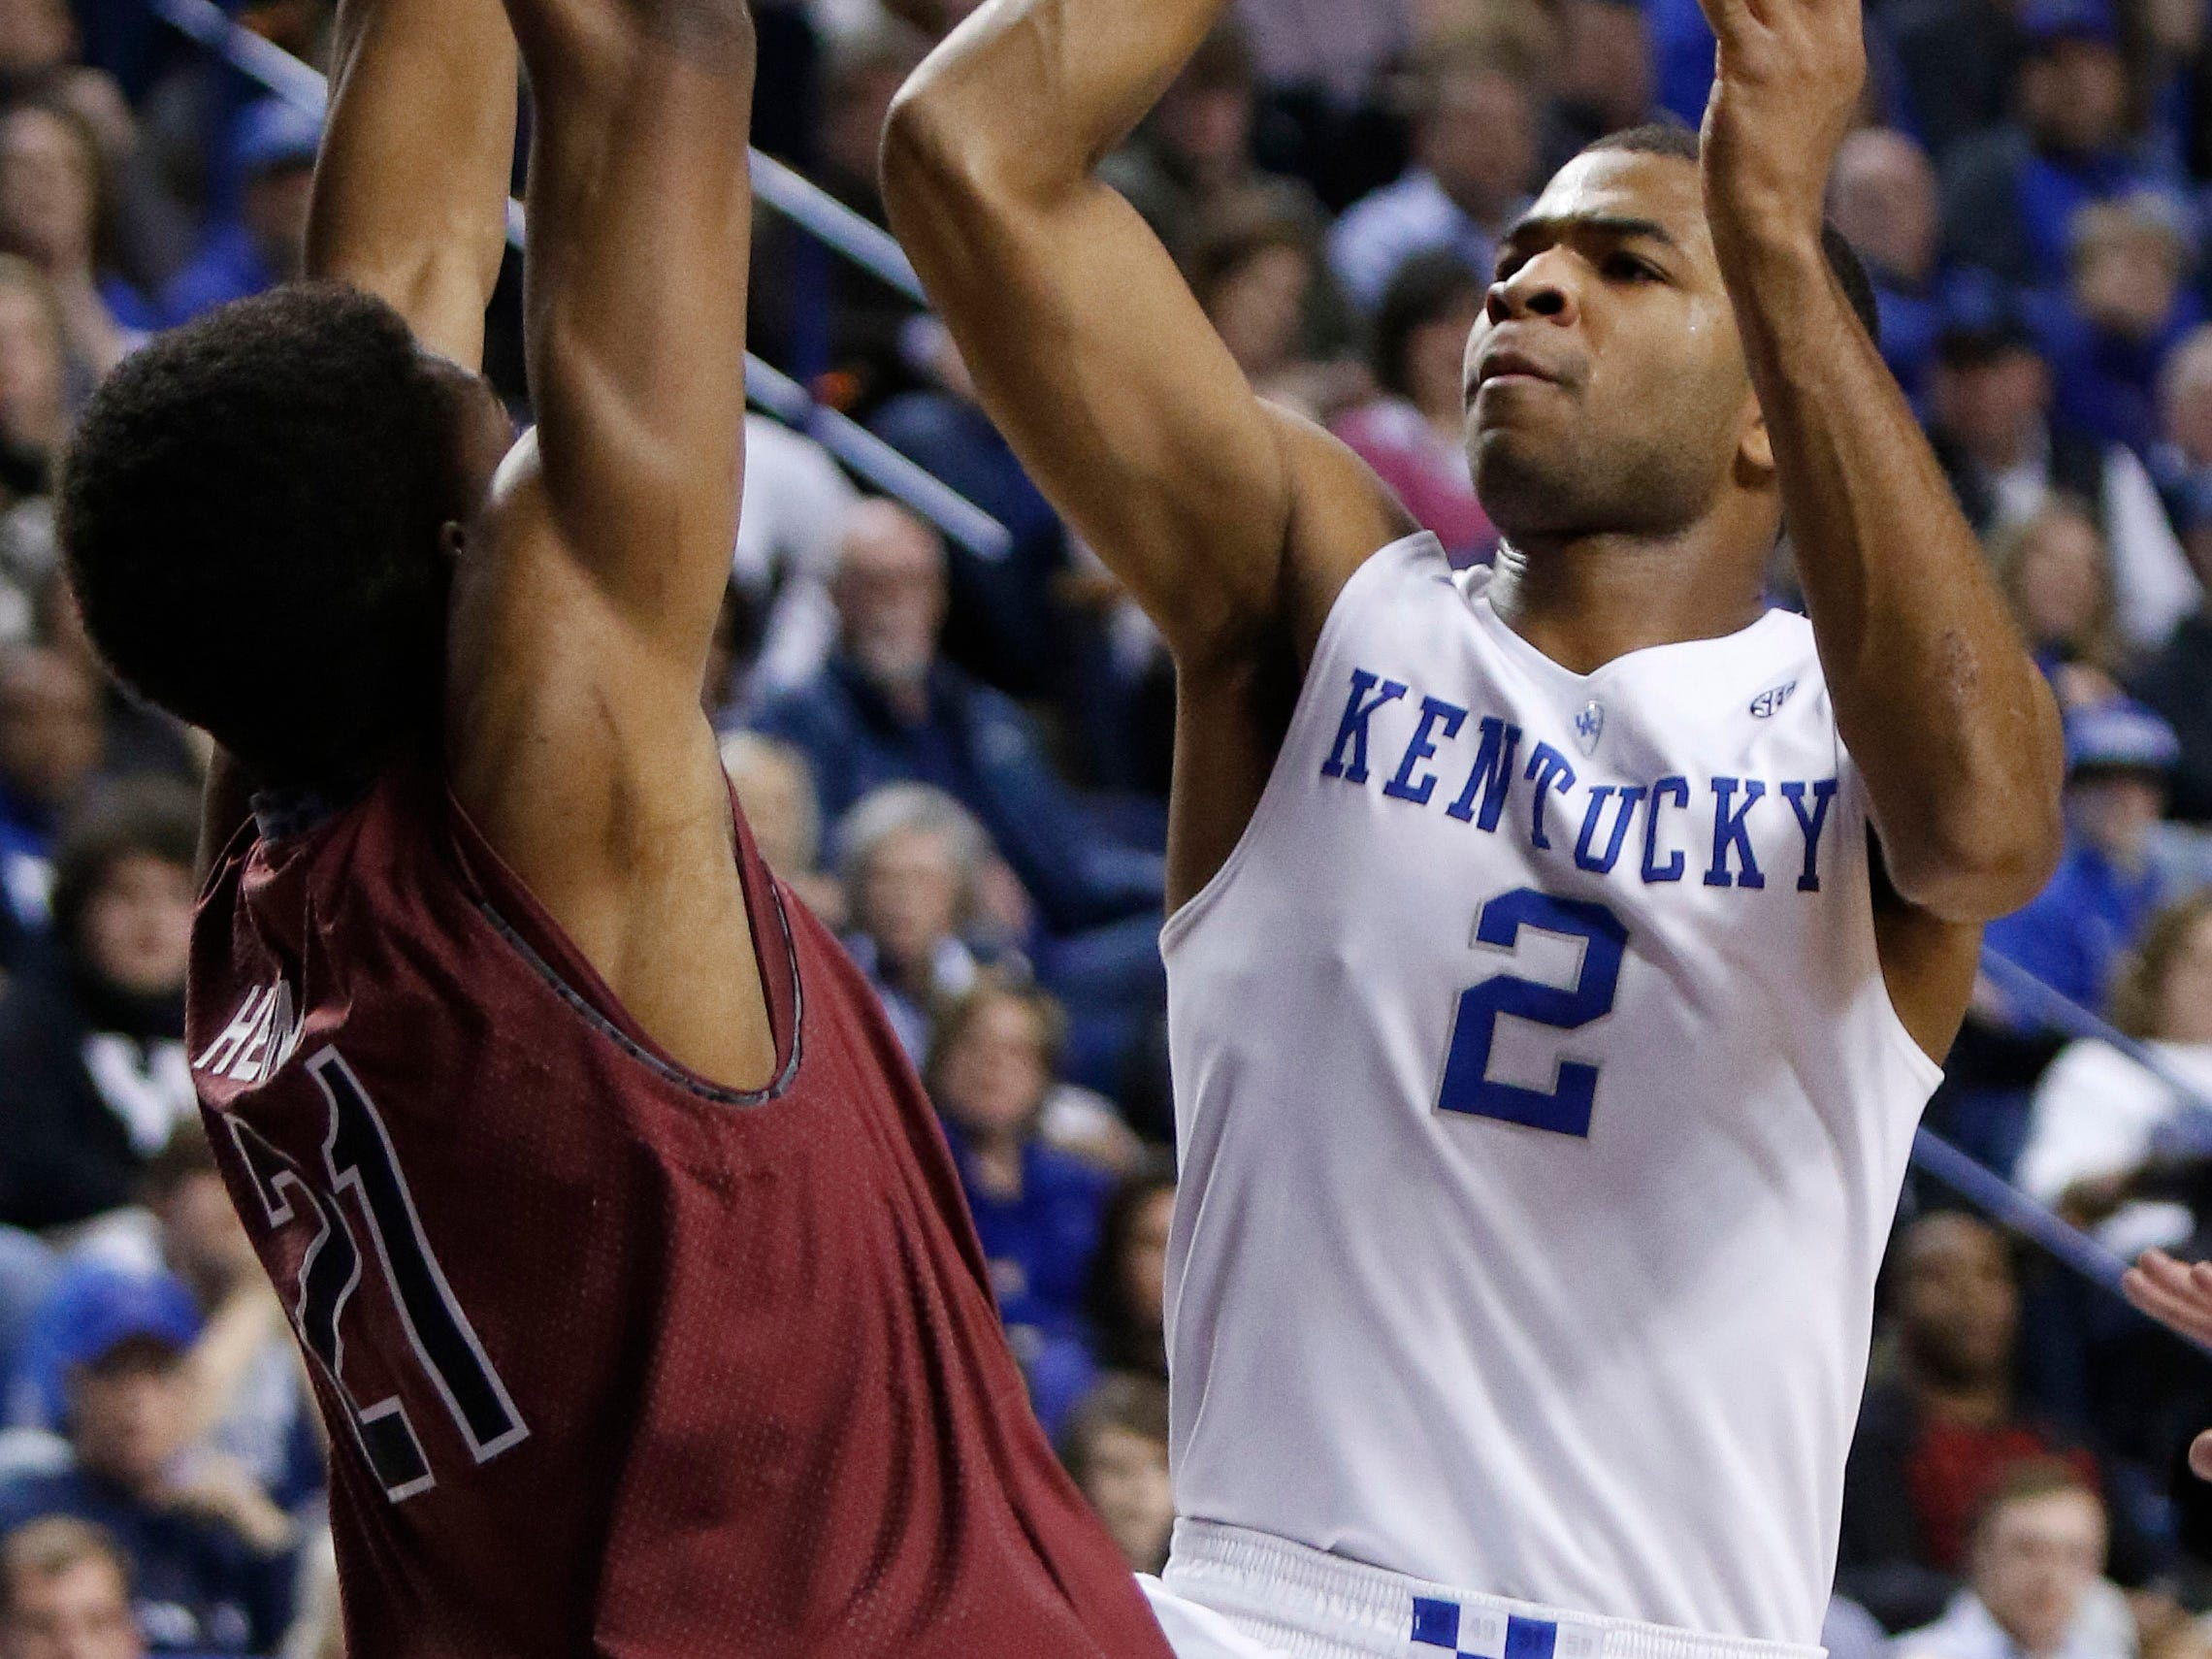 Kentucky's Aaron Harrison (2) shoots while defended by South Carolina's Demetrius Henry during the first half of an NCAA college basketball game, Saturday, Feb. 14, 2015, in Lexington, Ky. (AP Photo/James Crisp)